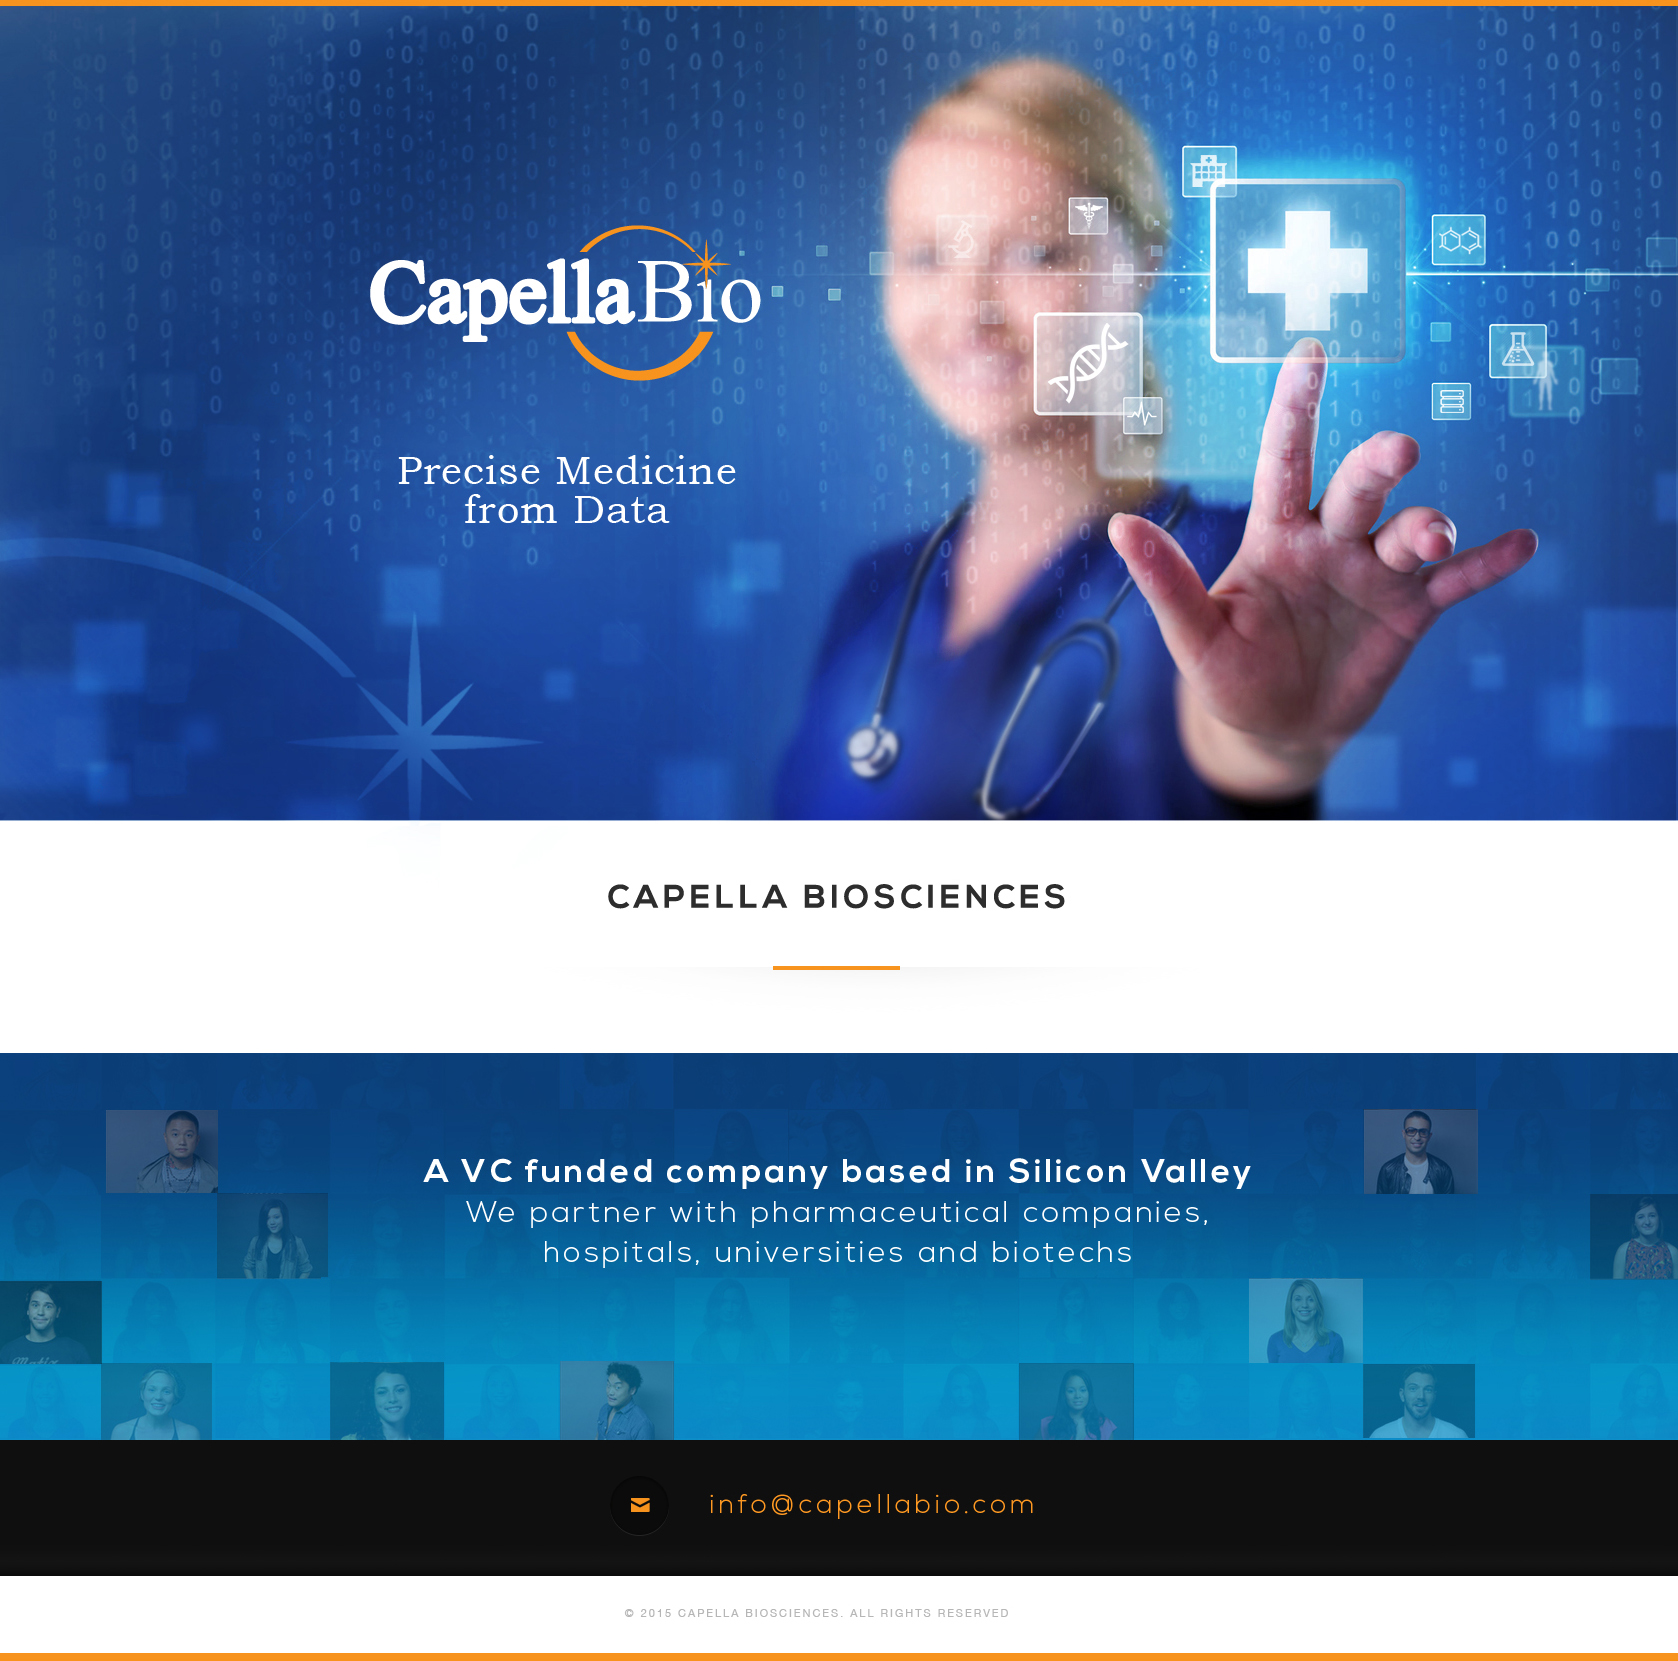 Capella Biosciences | CapellaBio | Precise Medicine from Data | CEO Pek Lum | Palo Alto California